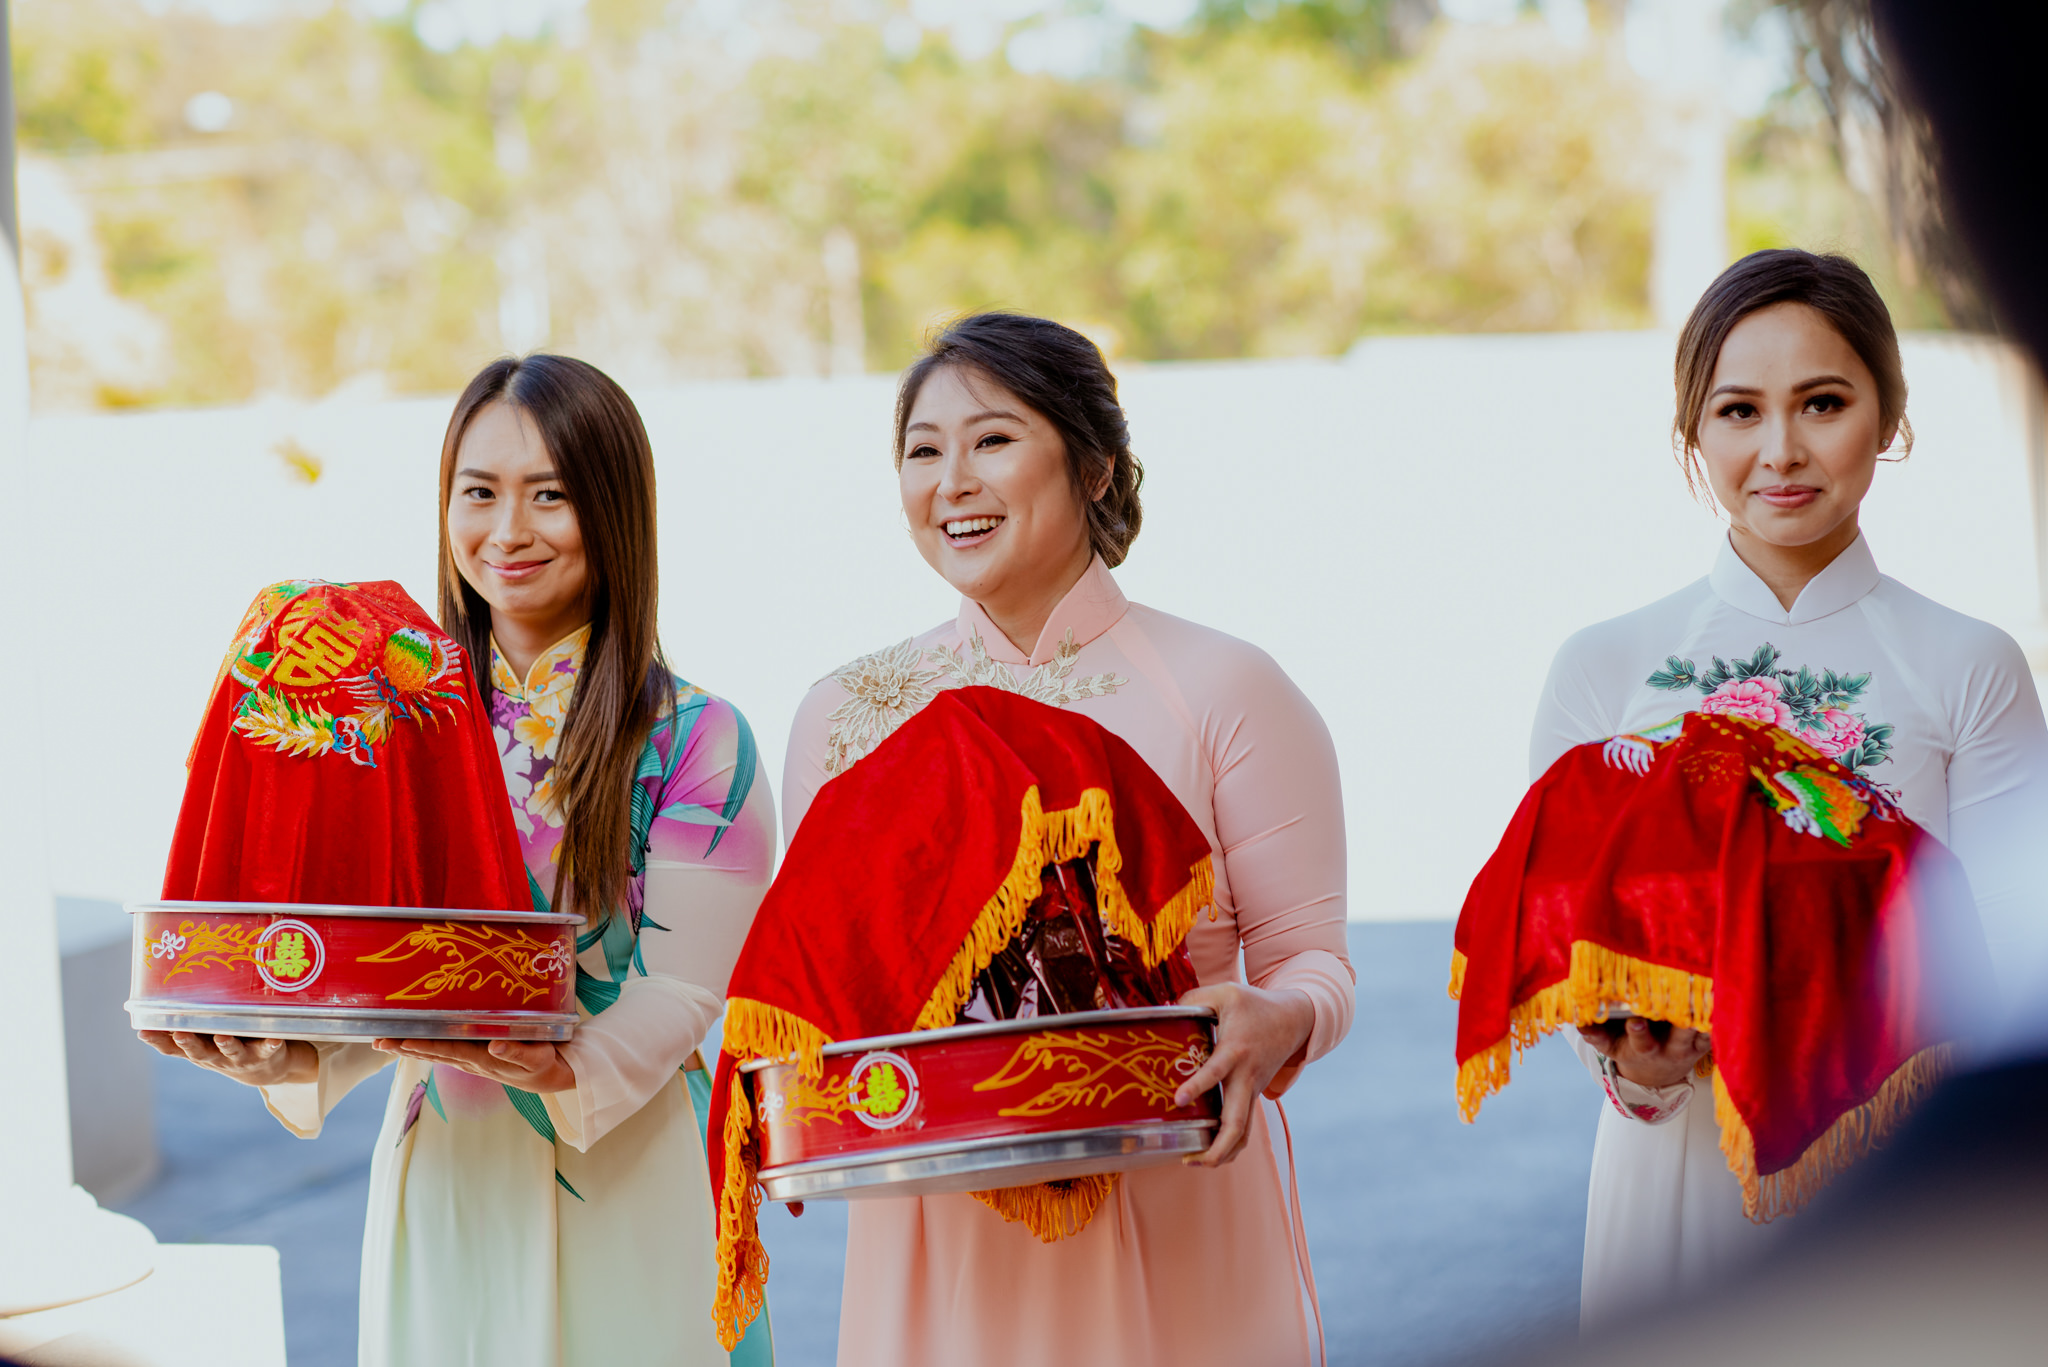 Vietnamese women laugh as they hold large red presents and wear traditional Vietnamese clothes